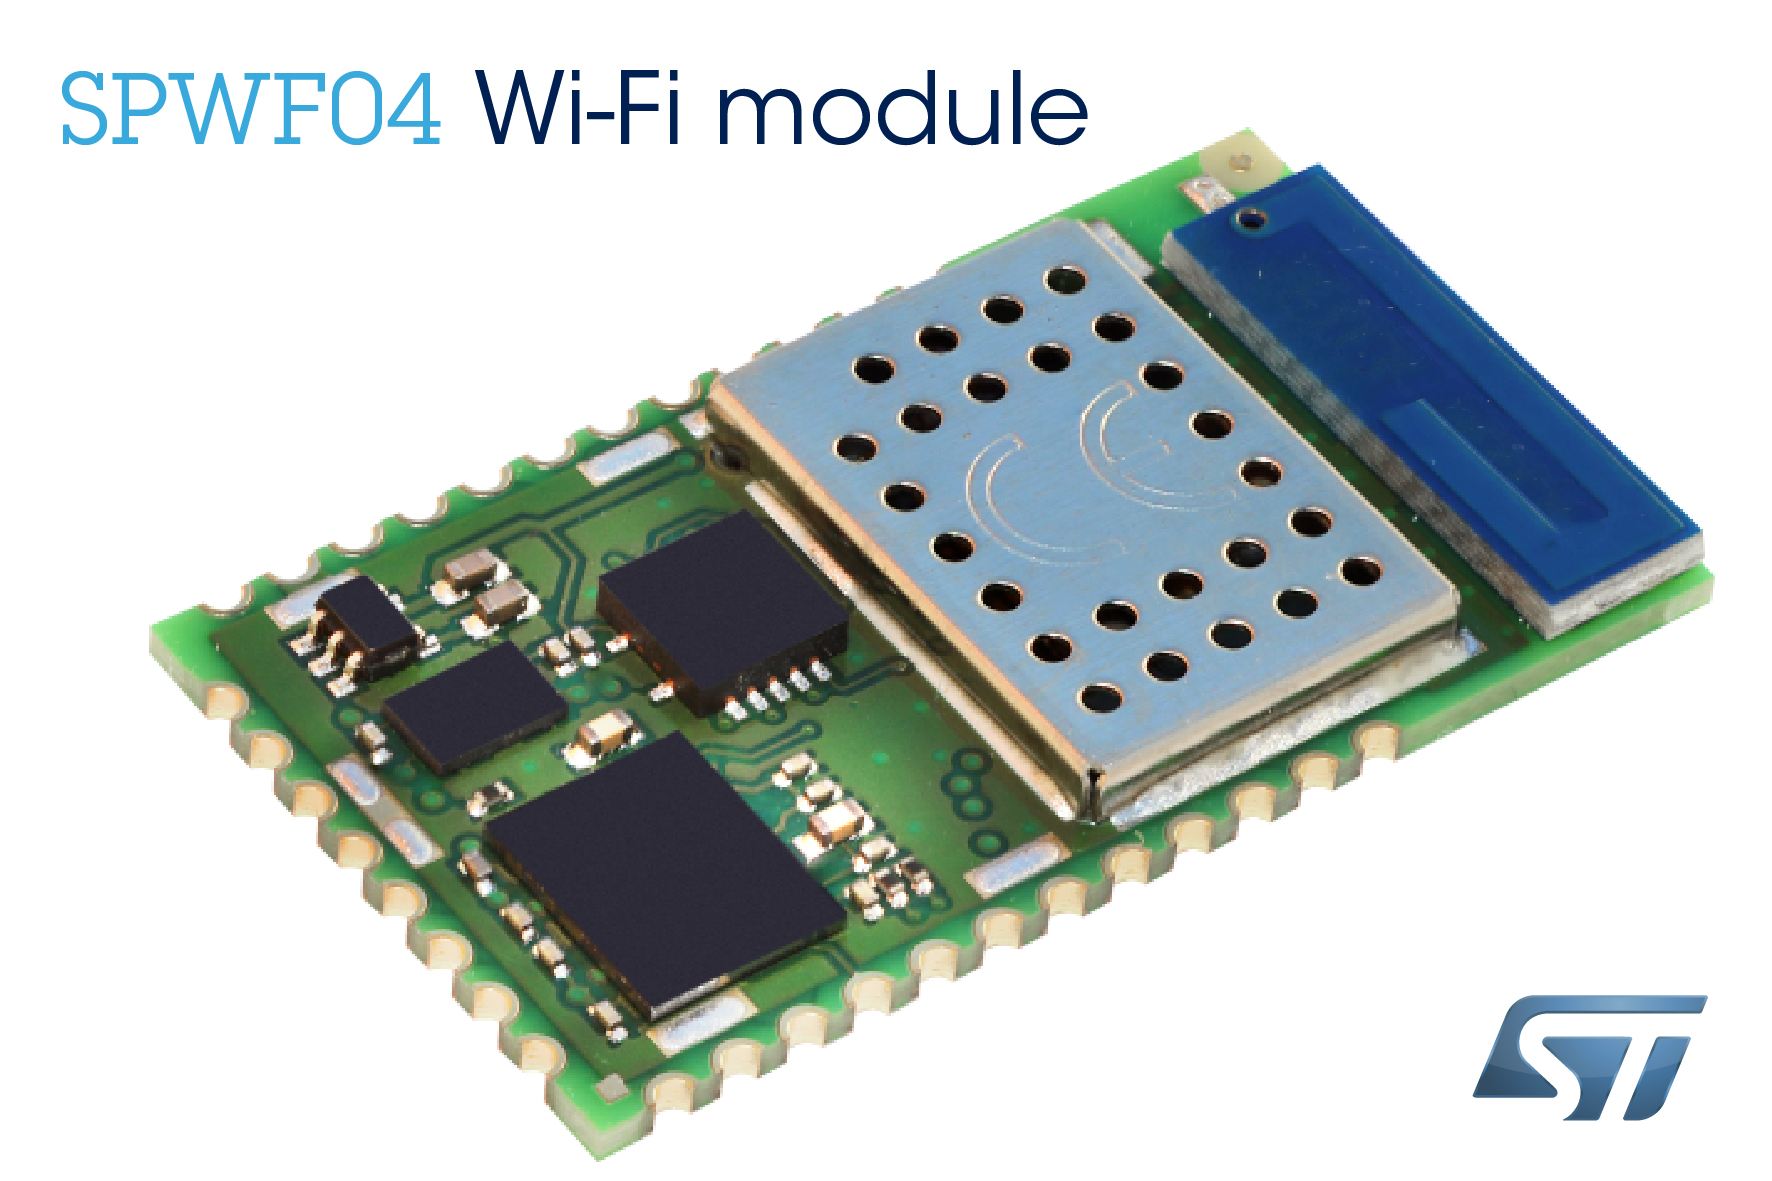 Cloud-compatible WiFi module secures IoT and M2M applications